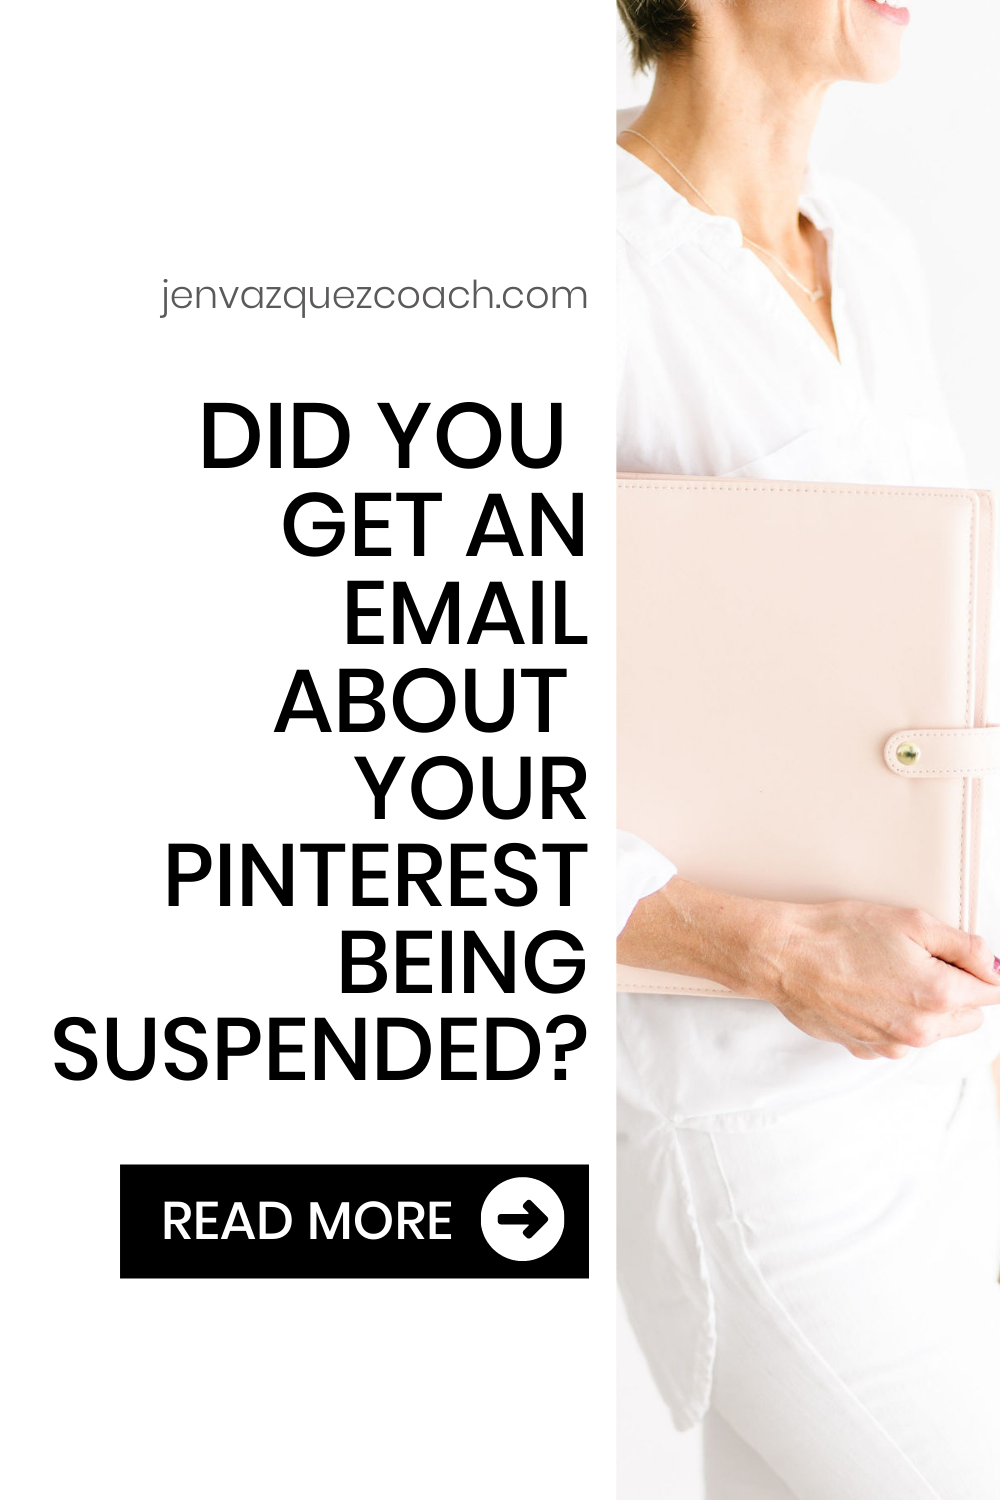 Did you get an email about your Pinterest being suspended?